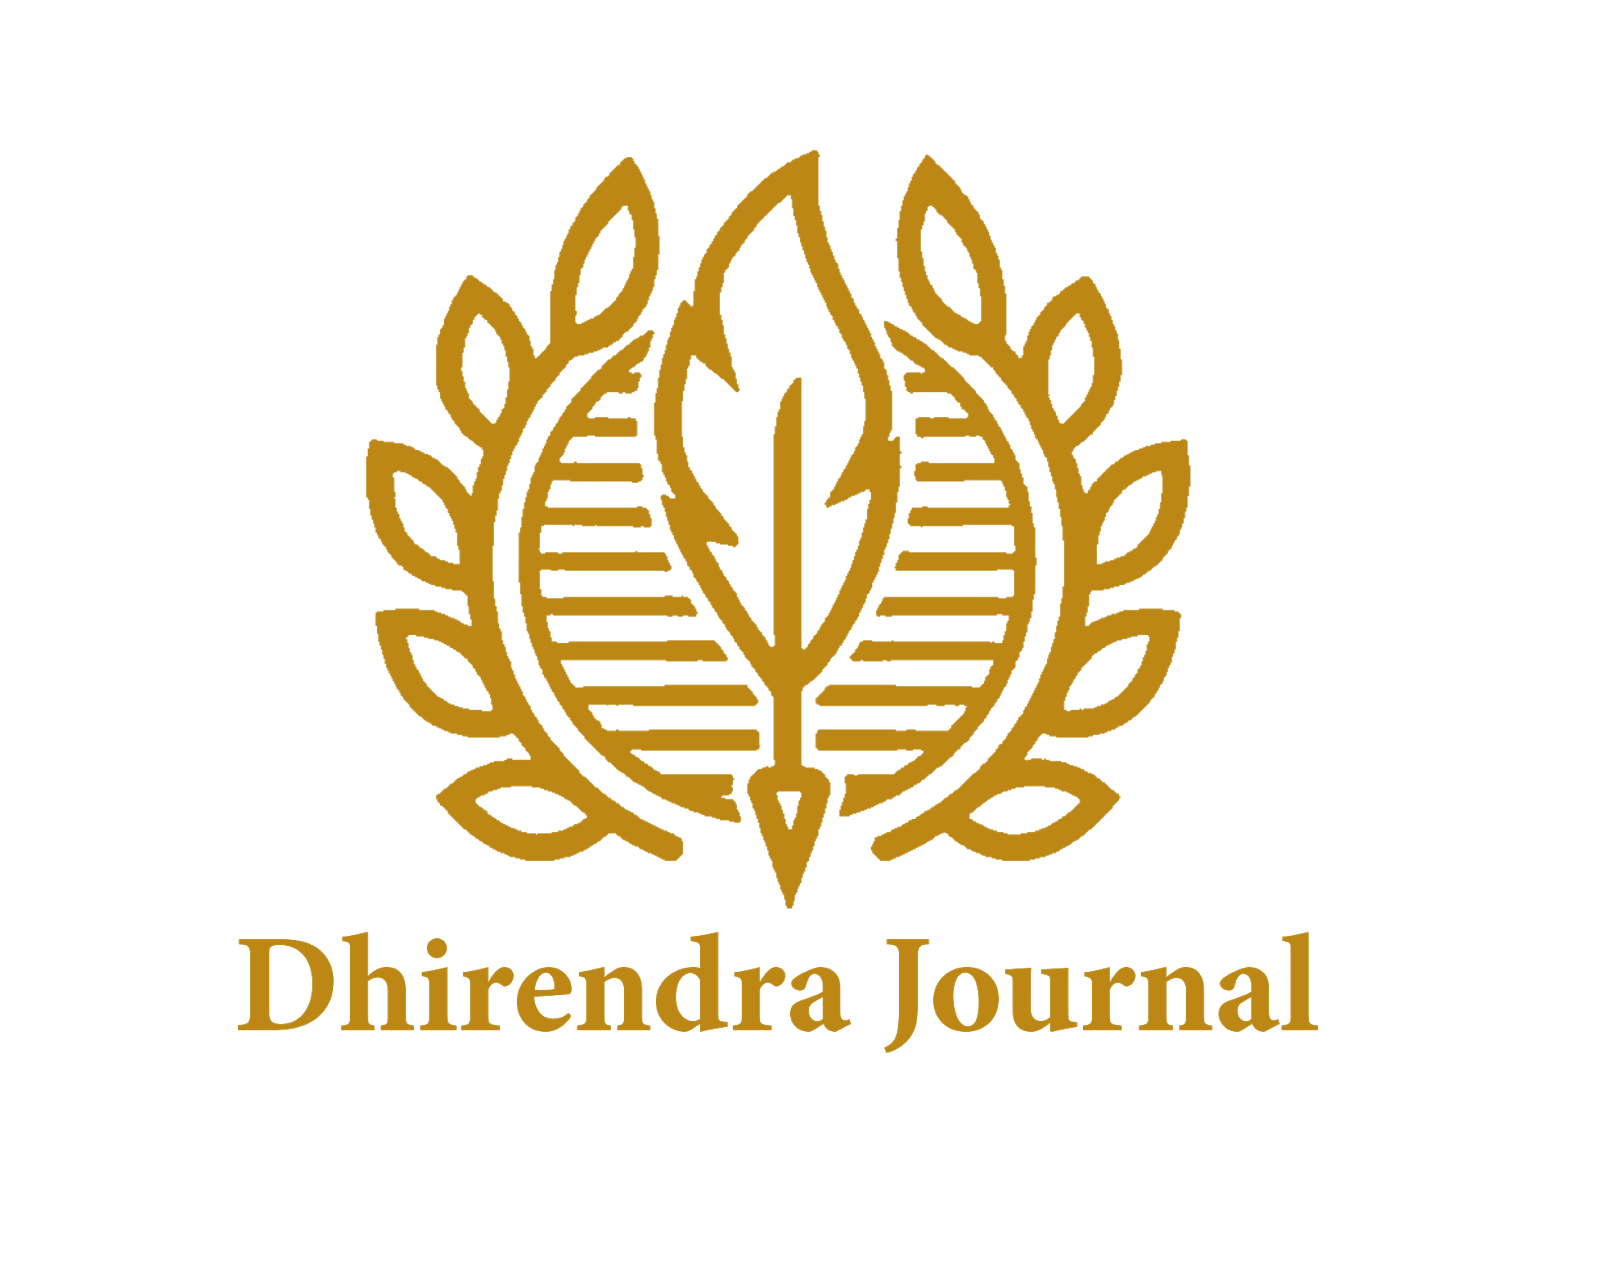 DHIRENDRA JOURNAL